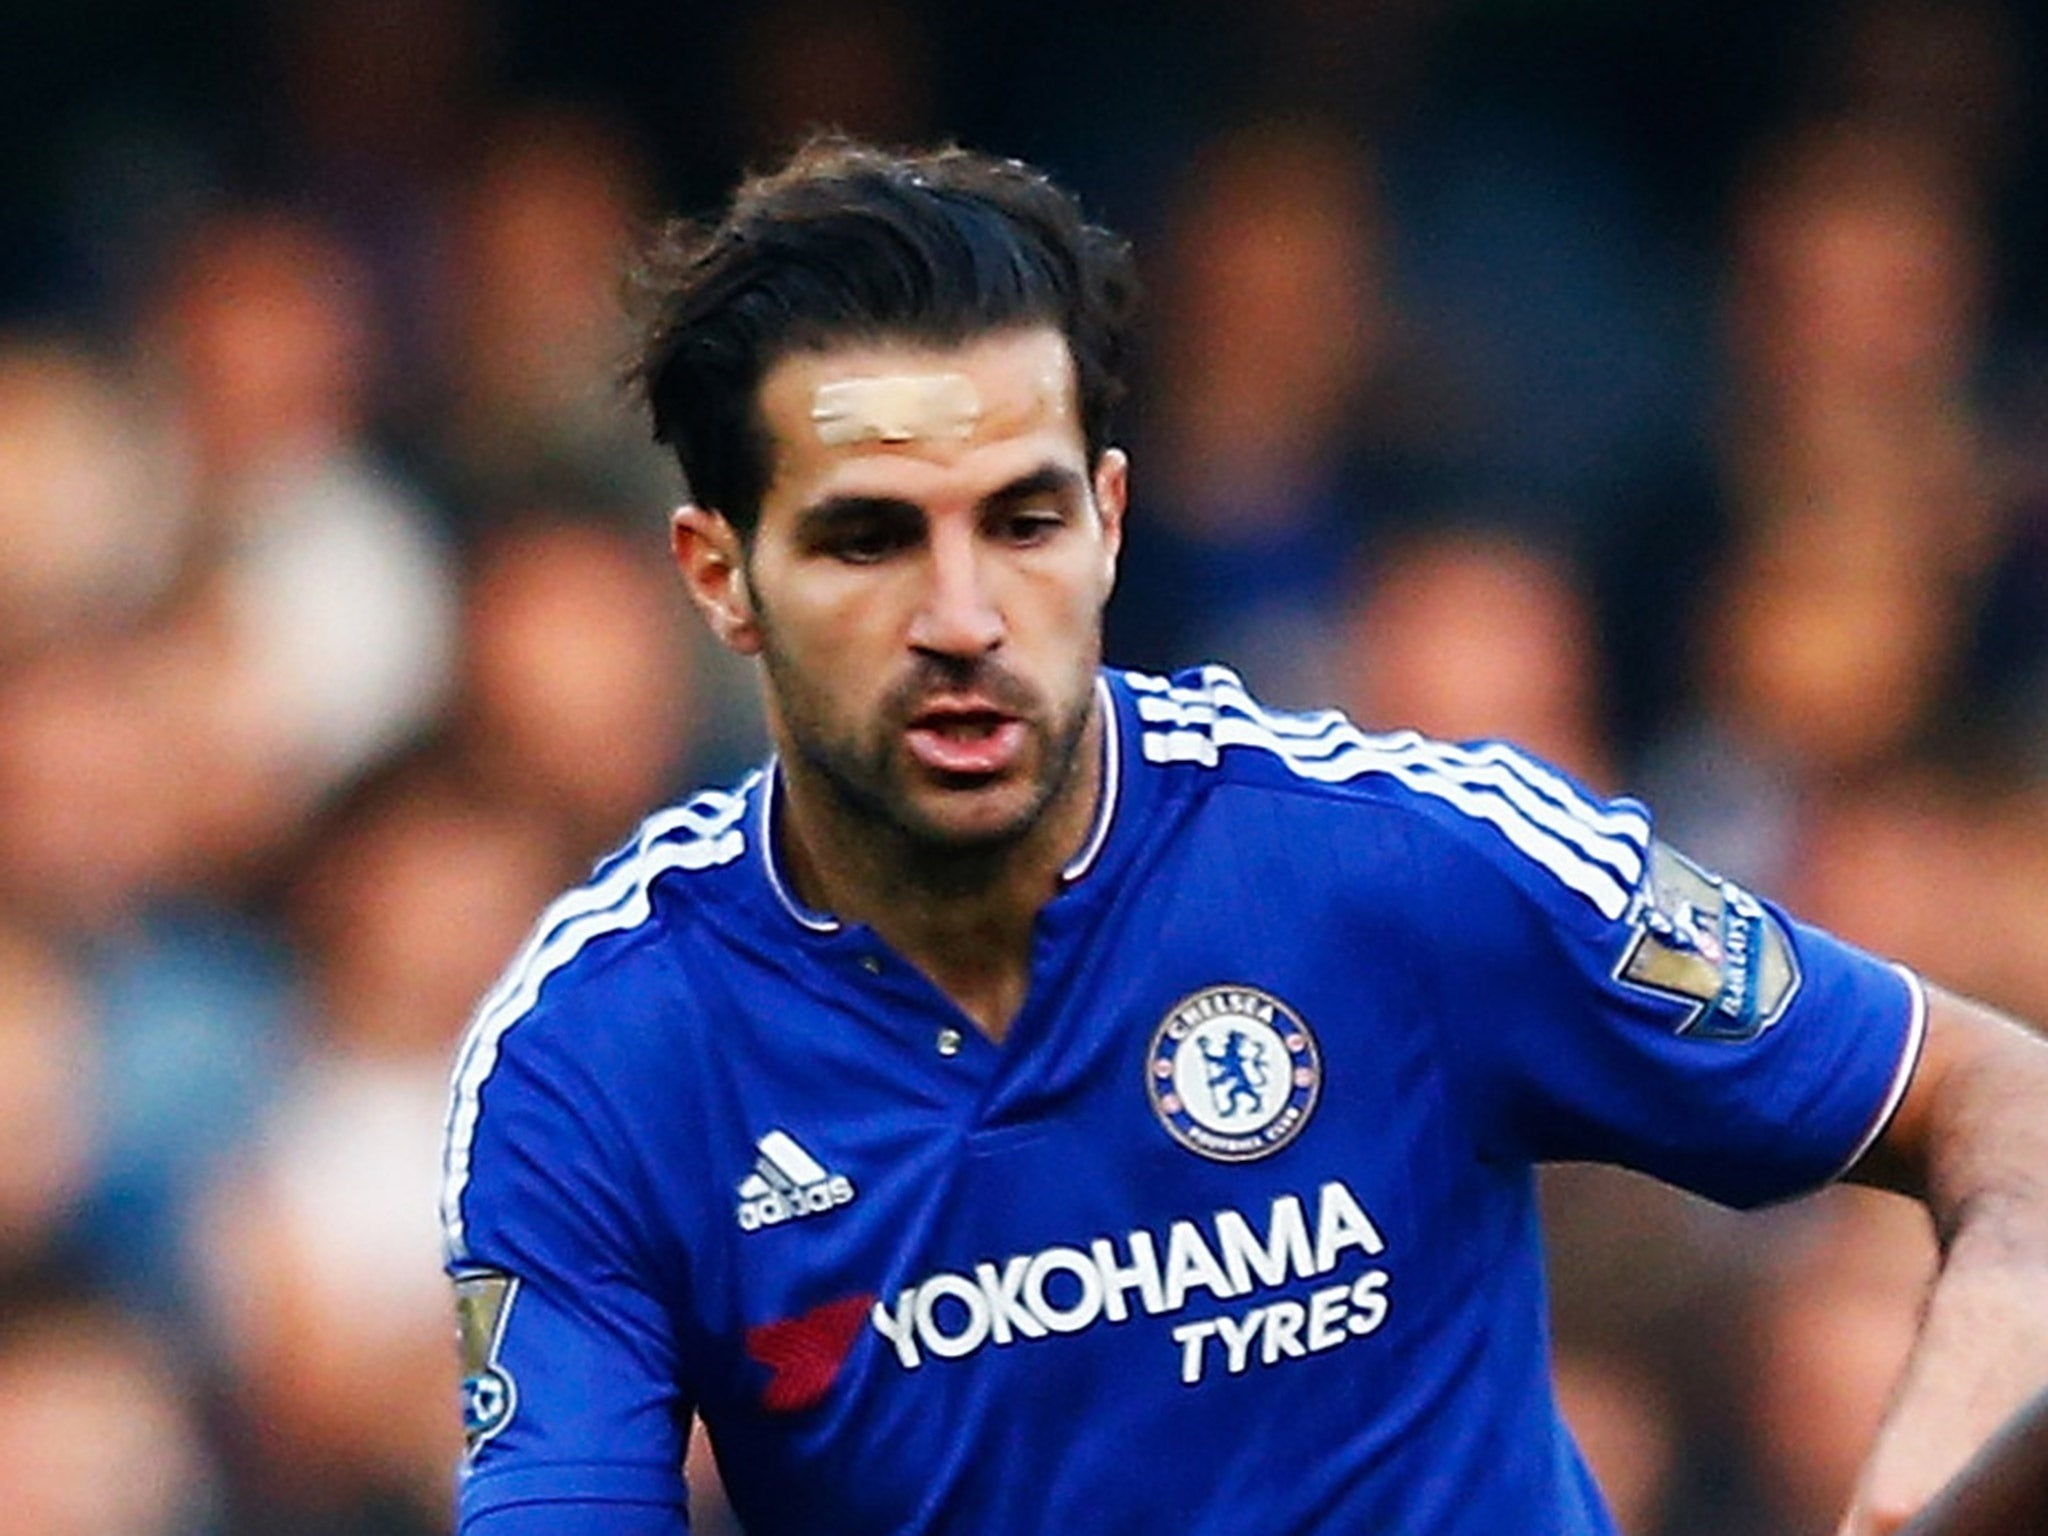 Stoke City vs Chelsea team news: Cesc Fabregas remains on the bench as Gary Cahill dropped